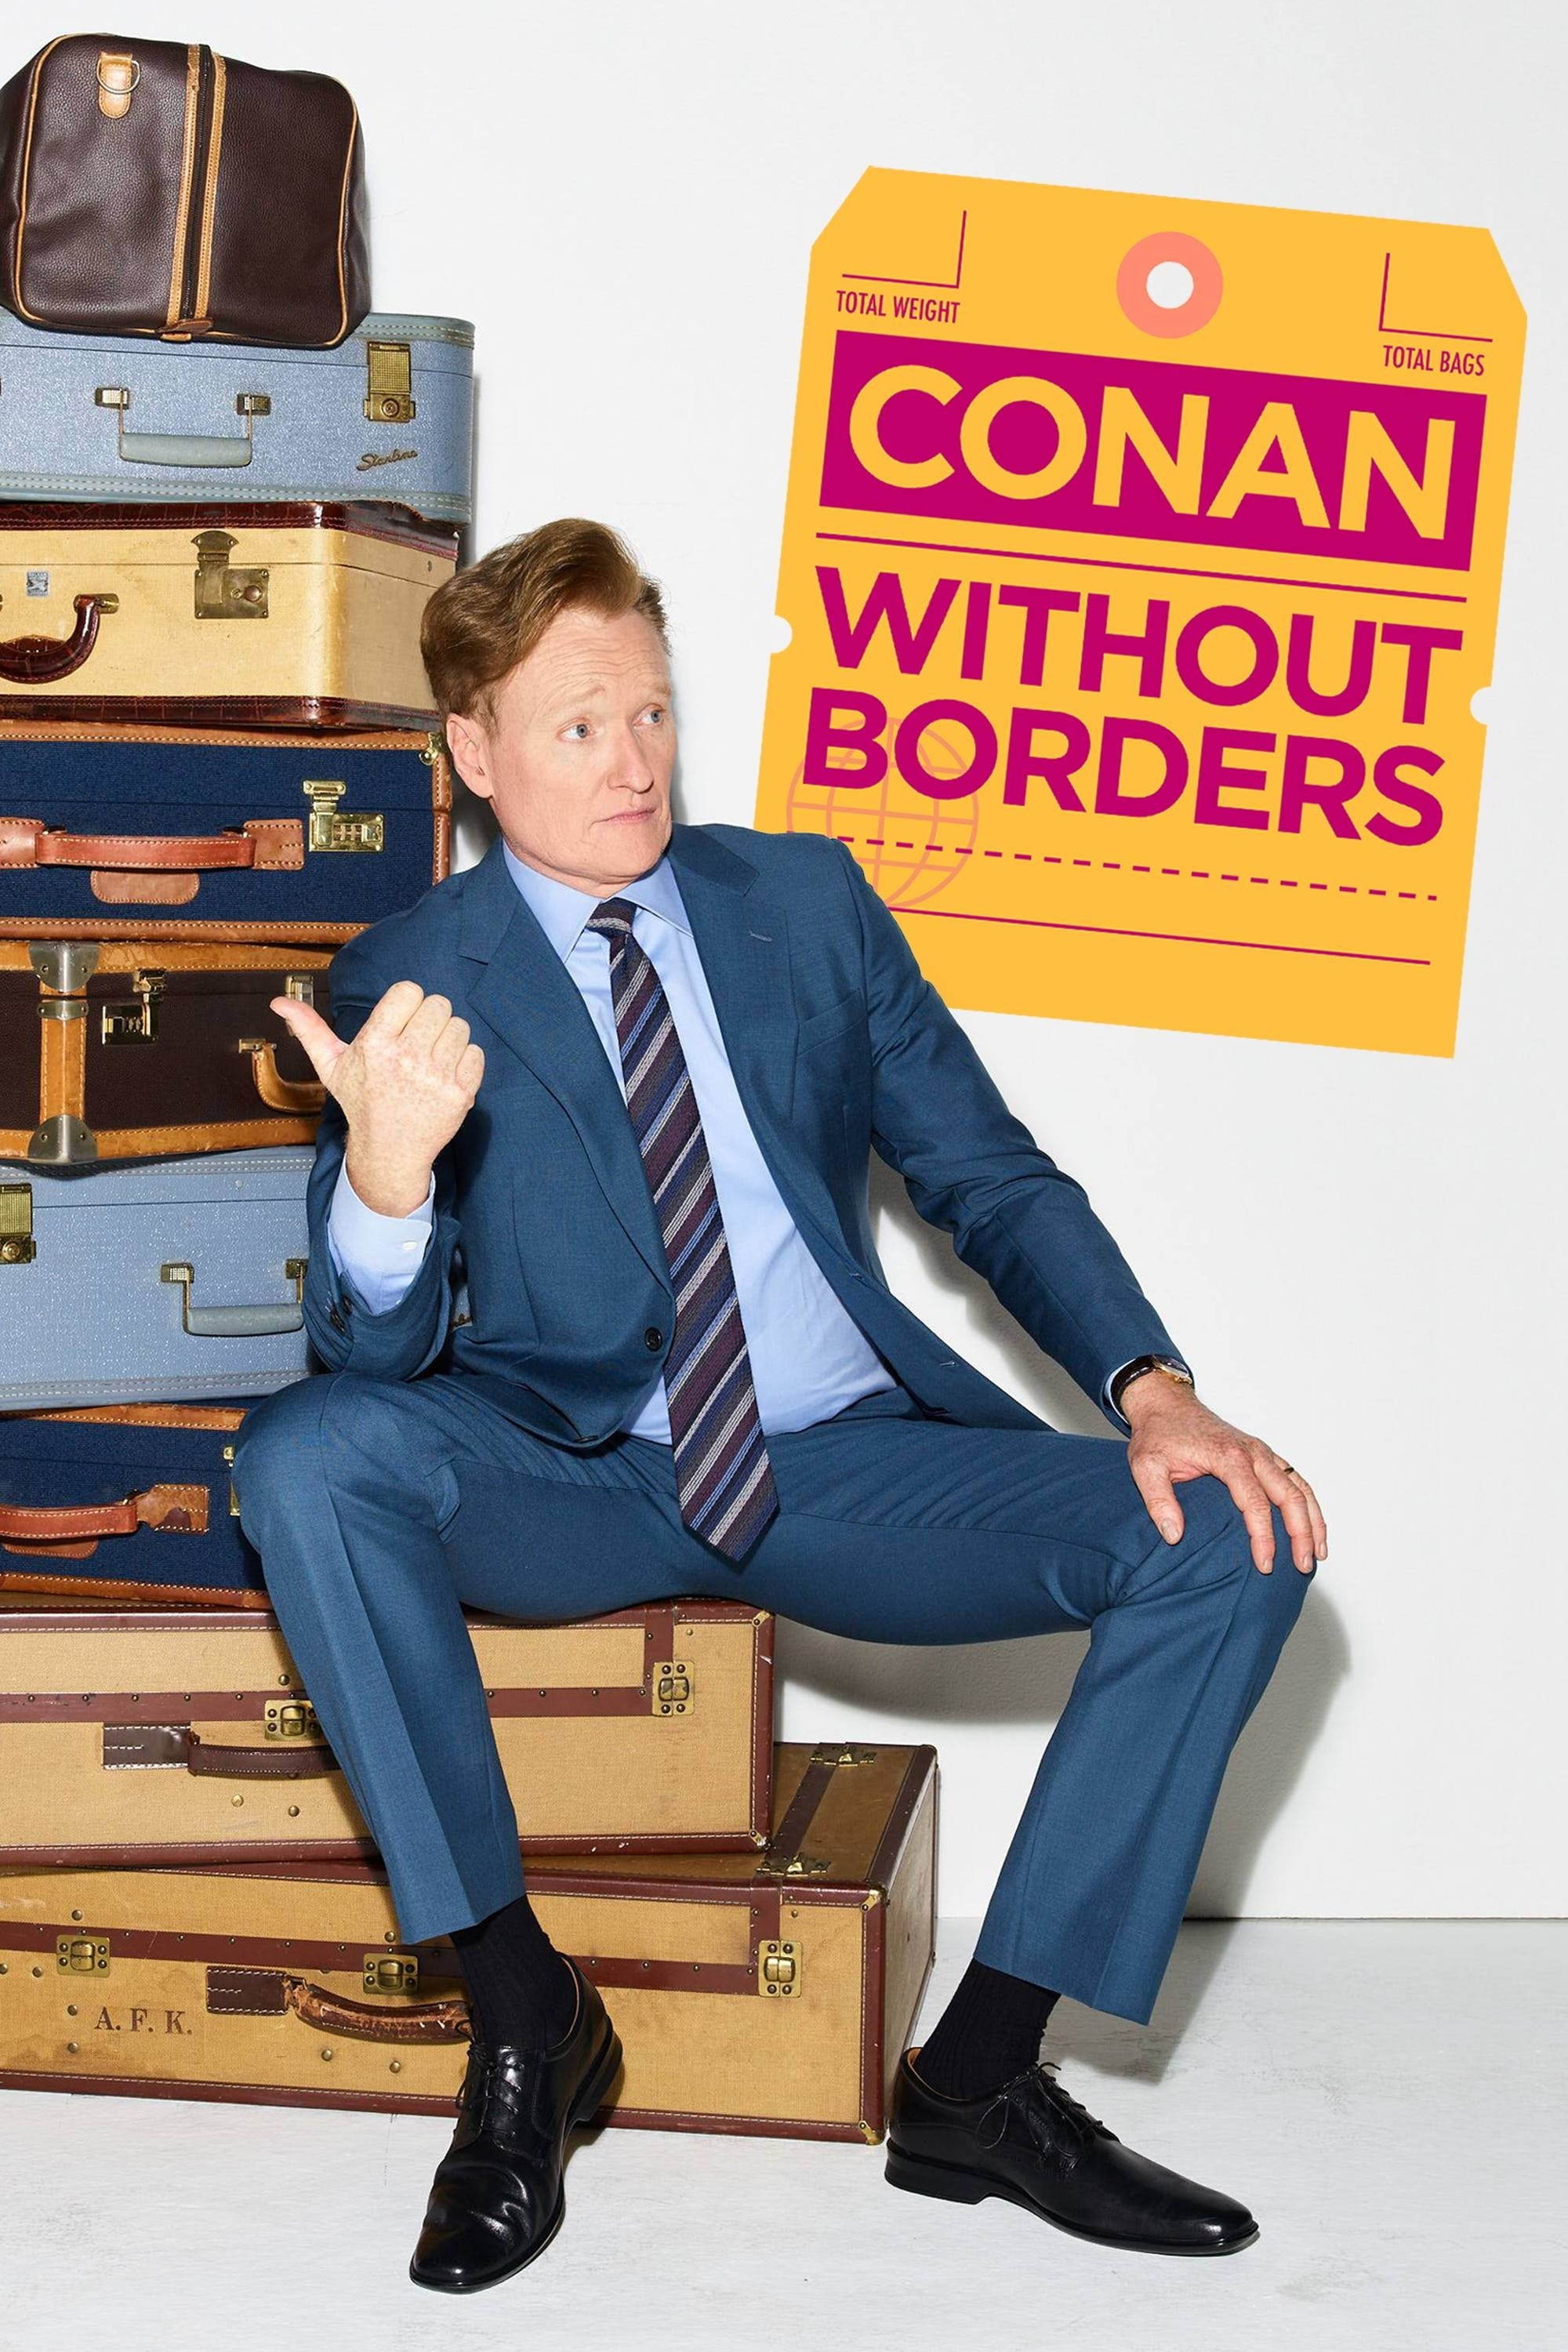 Conan Without Borders (2015)